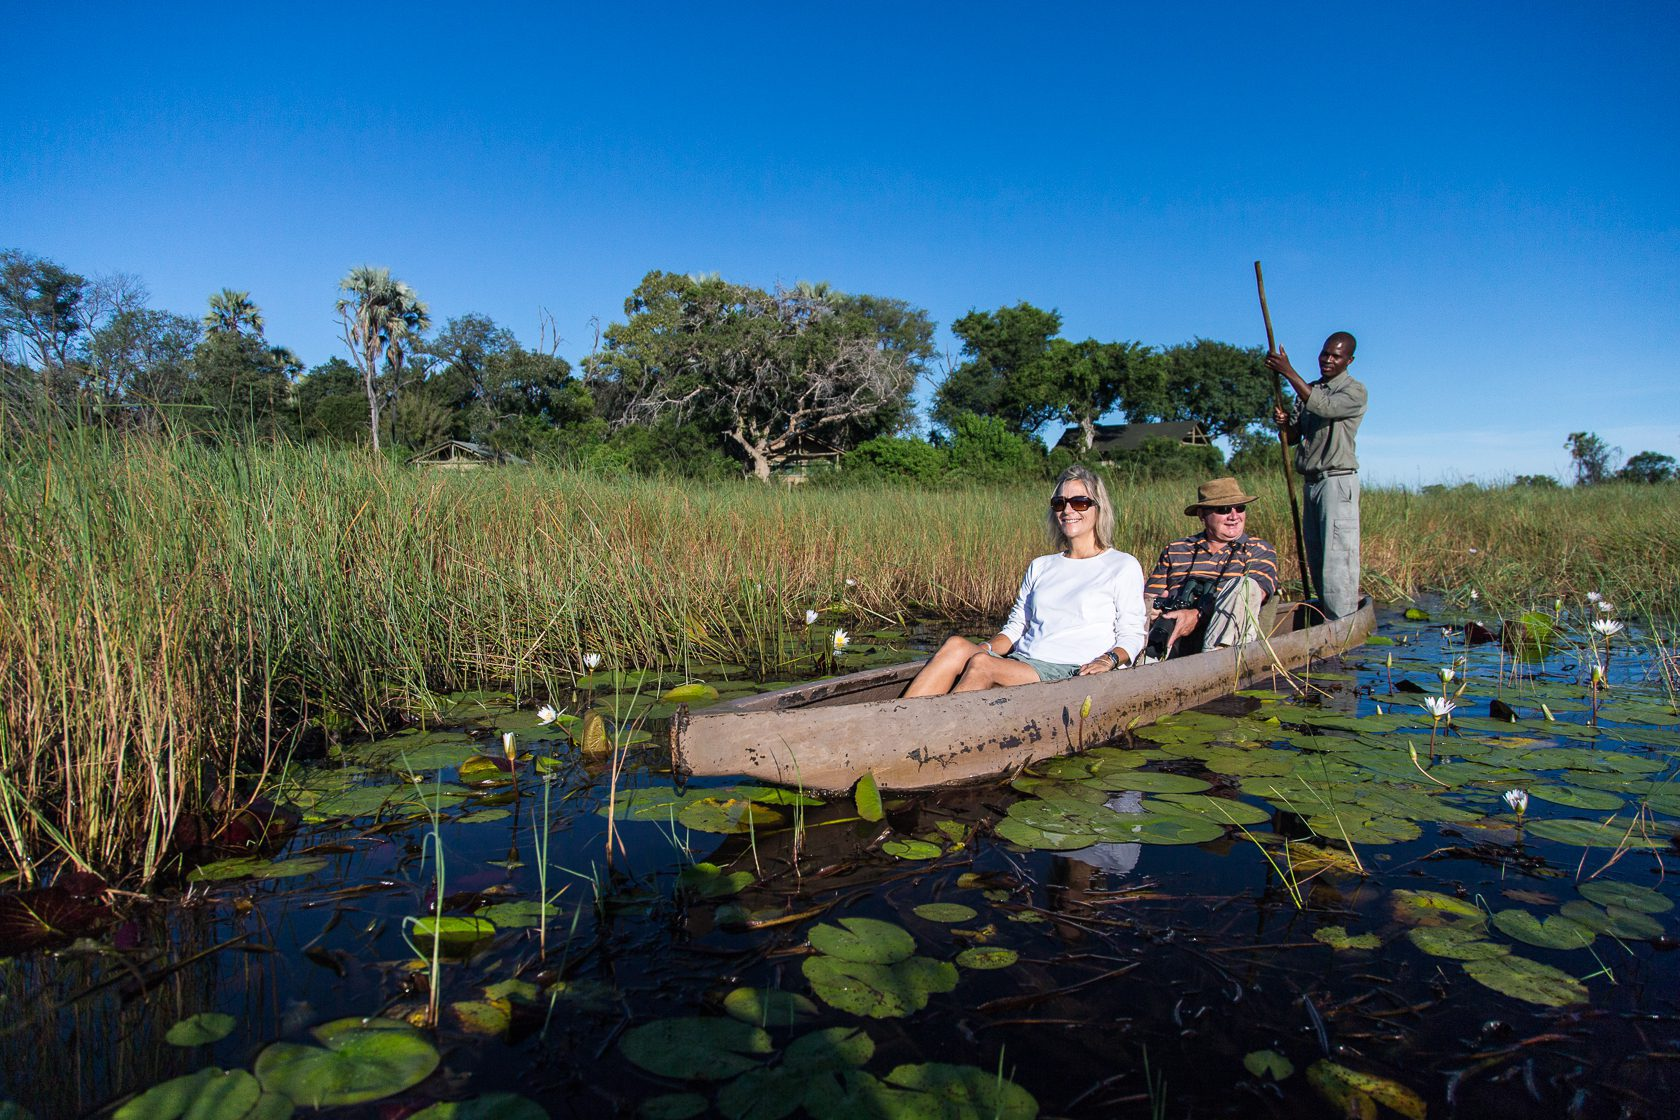 Seba Camp guests on a water safari with guide botswana on our off-grid Botswana safari